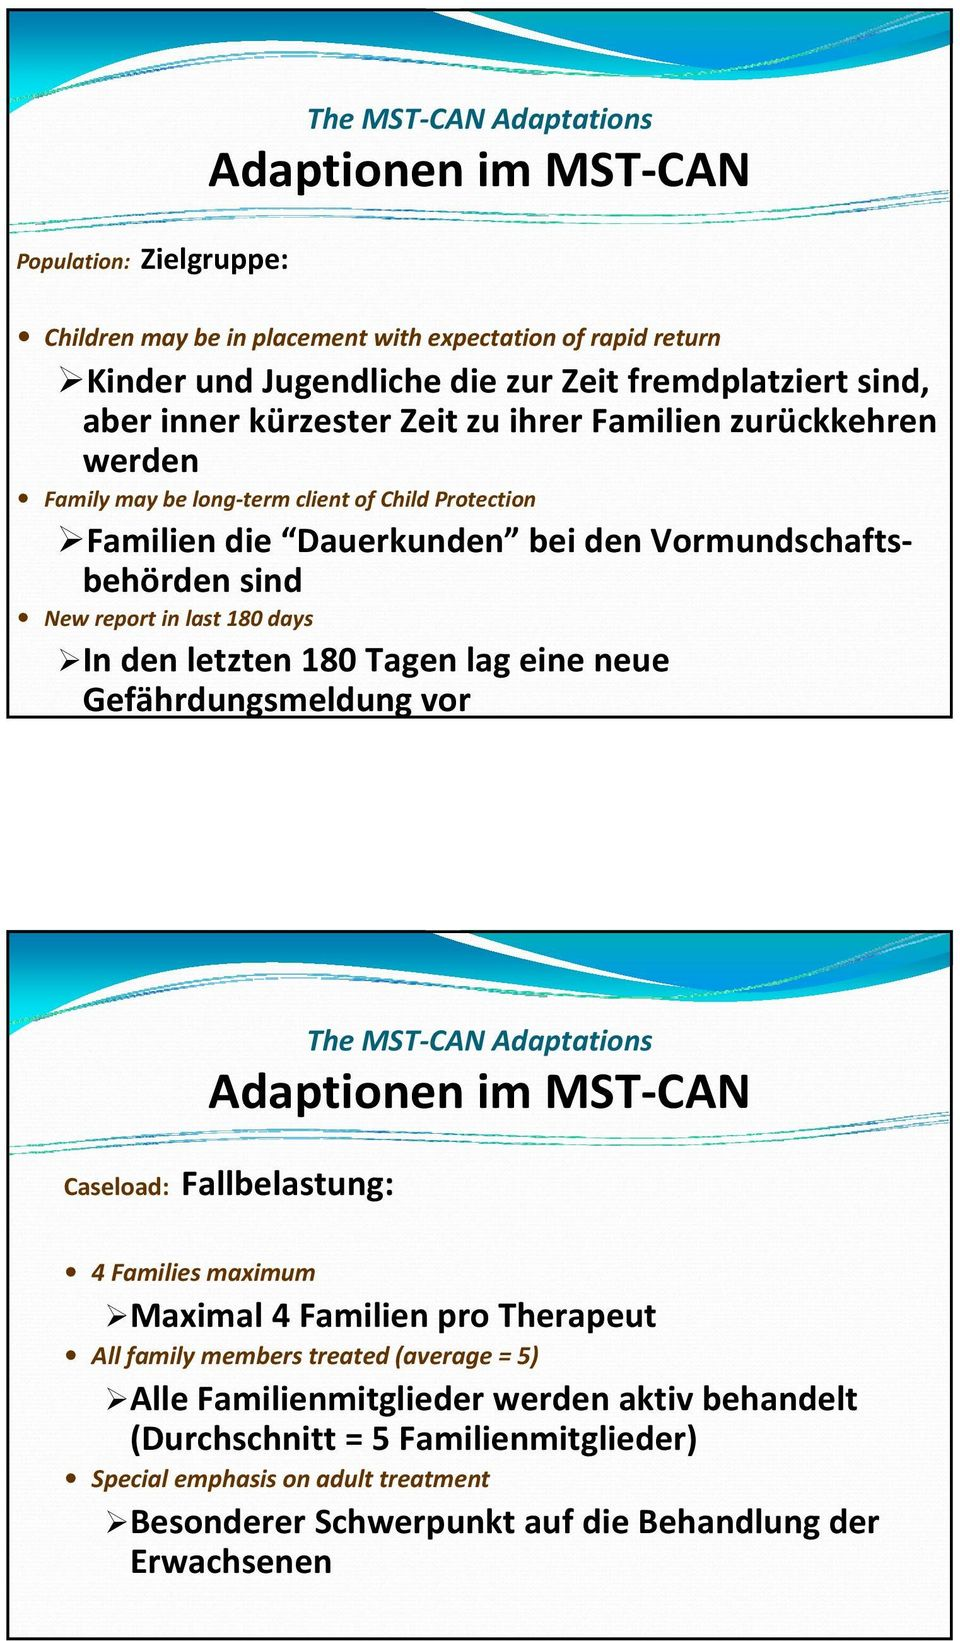 letzten 180 Tagen lag eine neue Gefährdungsmeldung vor The MST CAN Adaptations Adaptionen im MST CAN Caseload: Fallbelastung: 4 Families maximum Maximal 4 Familien pro Therapeut All family members